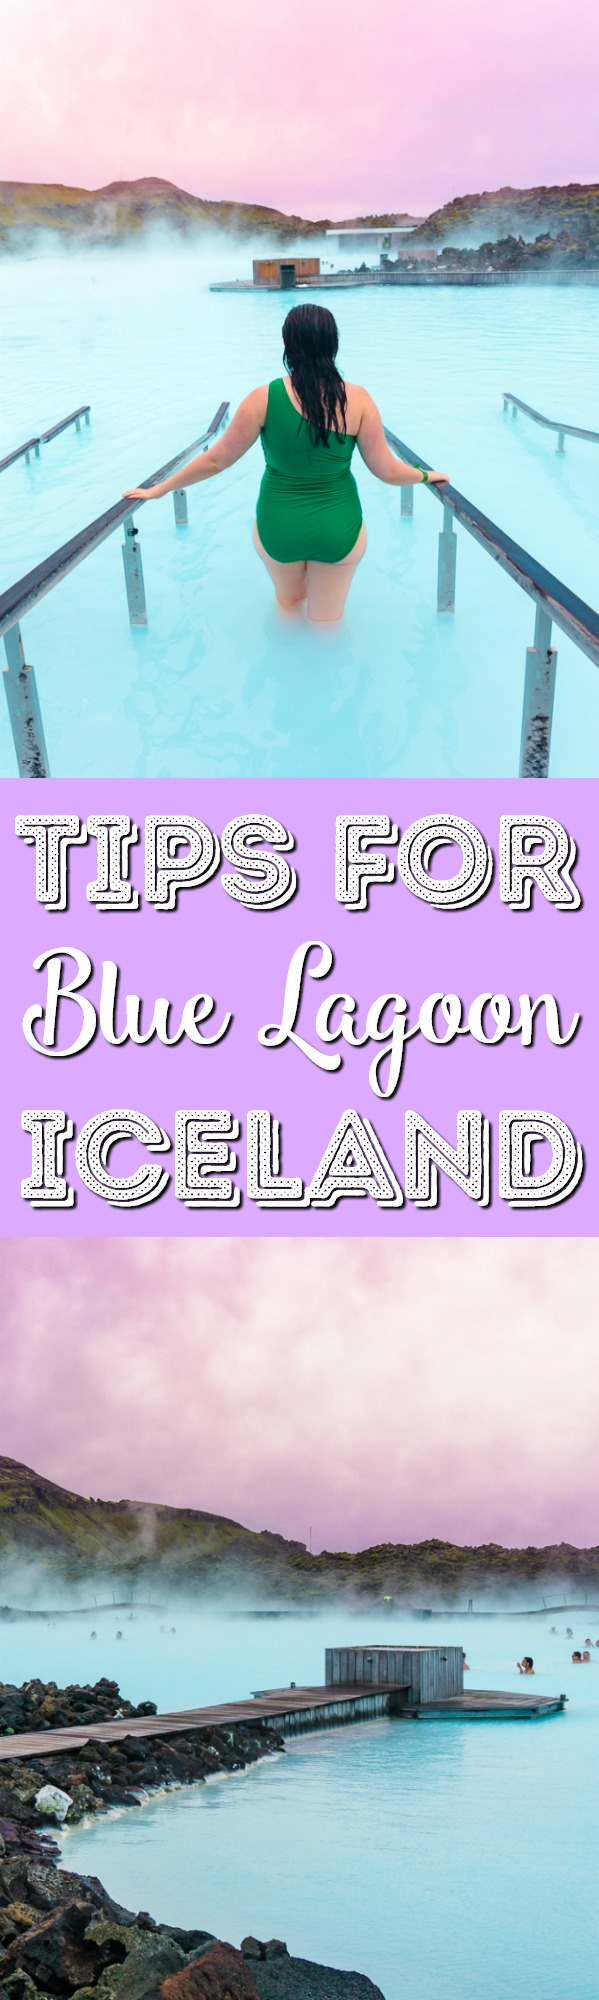 Dreaming of going to the Blue Lagoon Iceland and not sure what to bring, when to go, and what package to book? Here are my tips for visiting this luxurious geothermal spa in the heart of Southern Iceland. via @sugarandsoulco